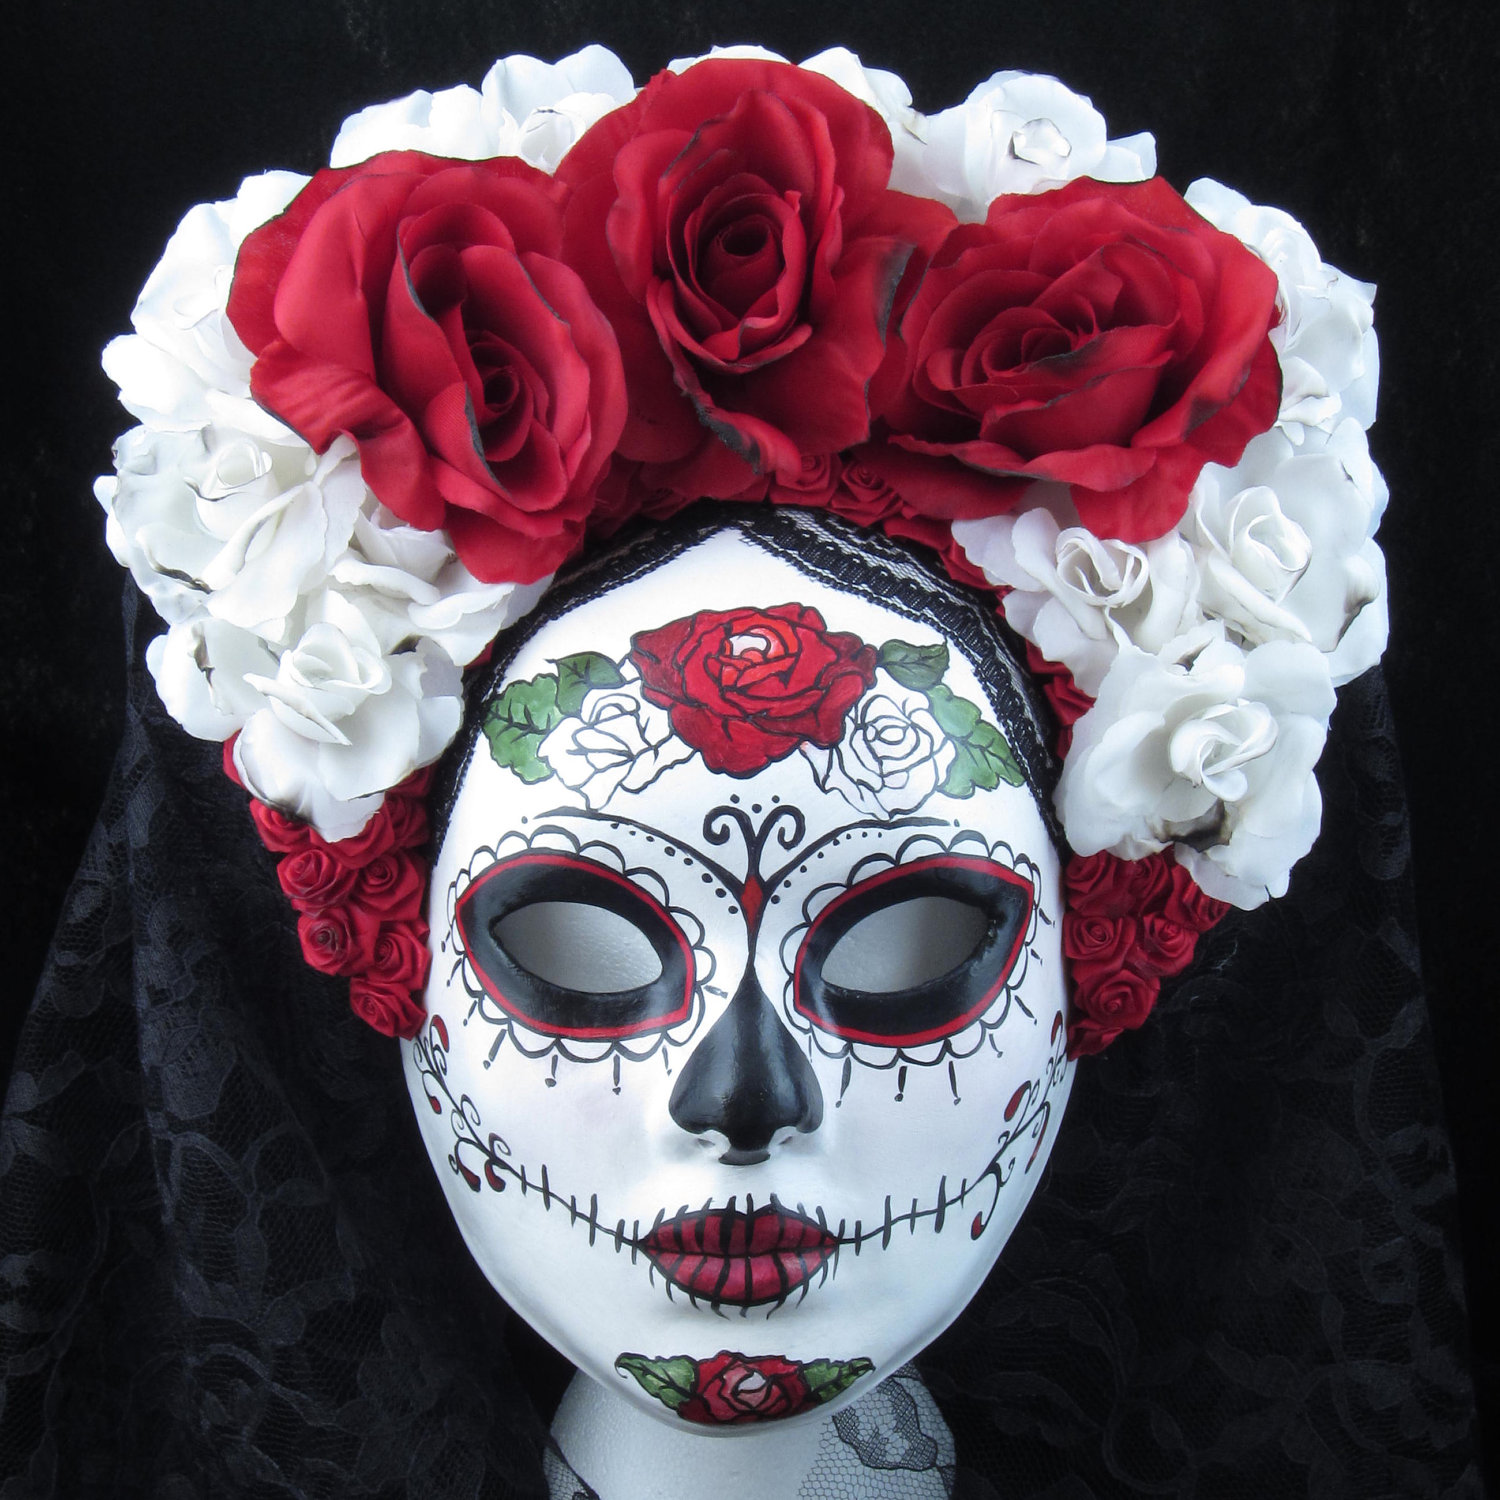 Right Red Mask for Day of the Dead/Dia de los Muertos/Costume ...